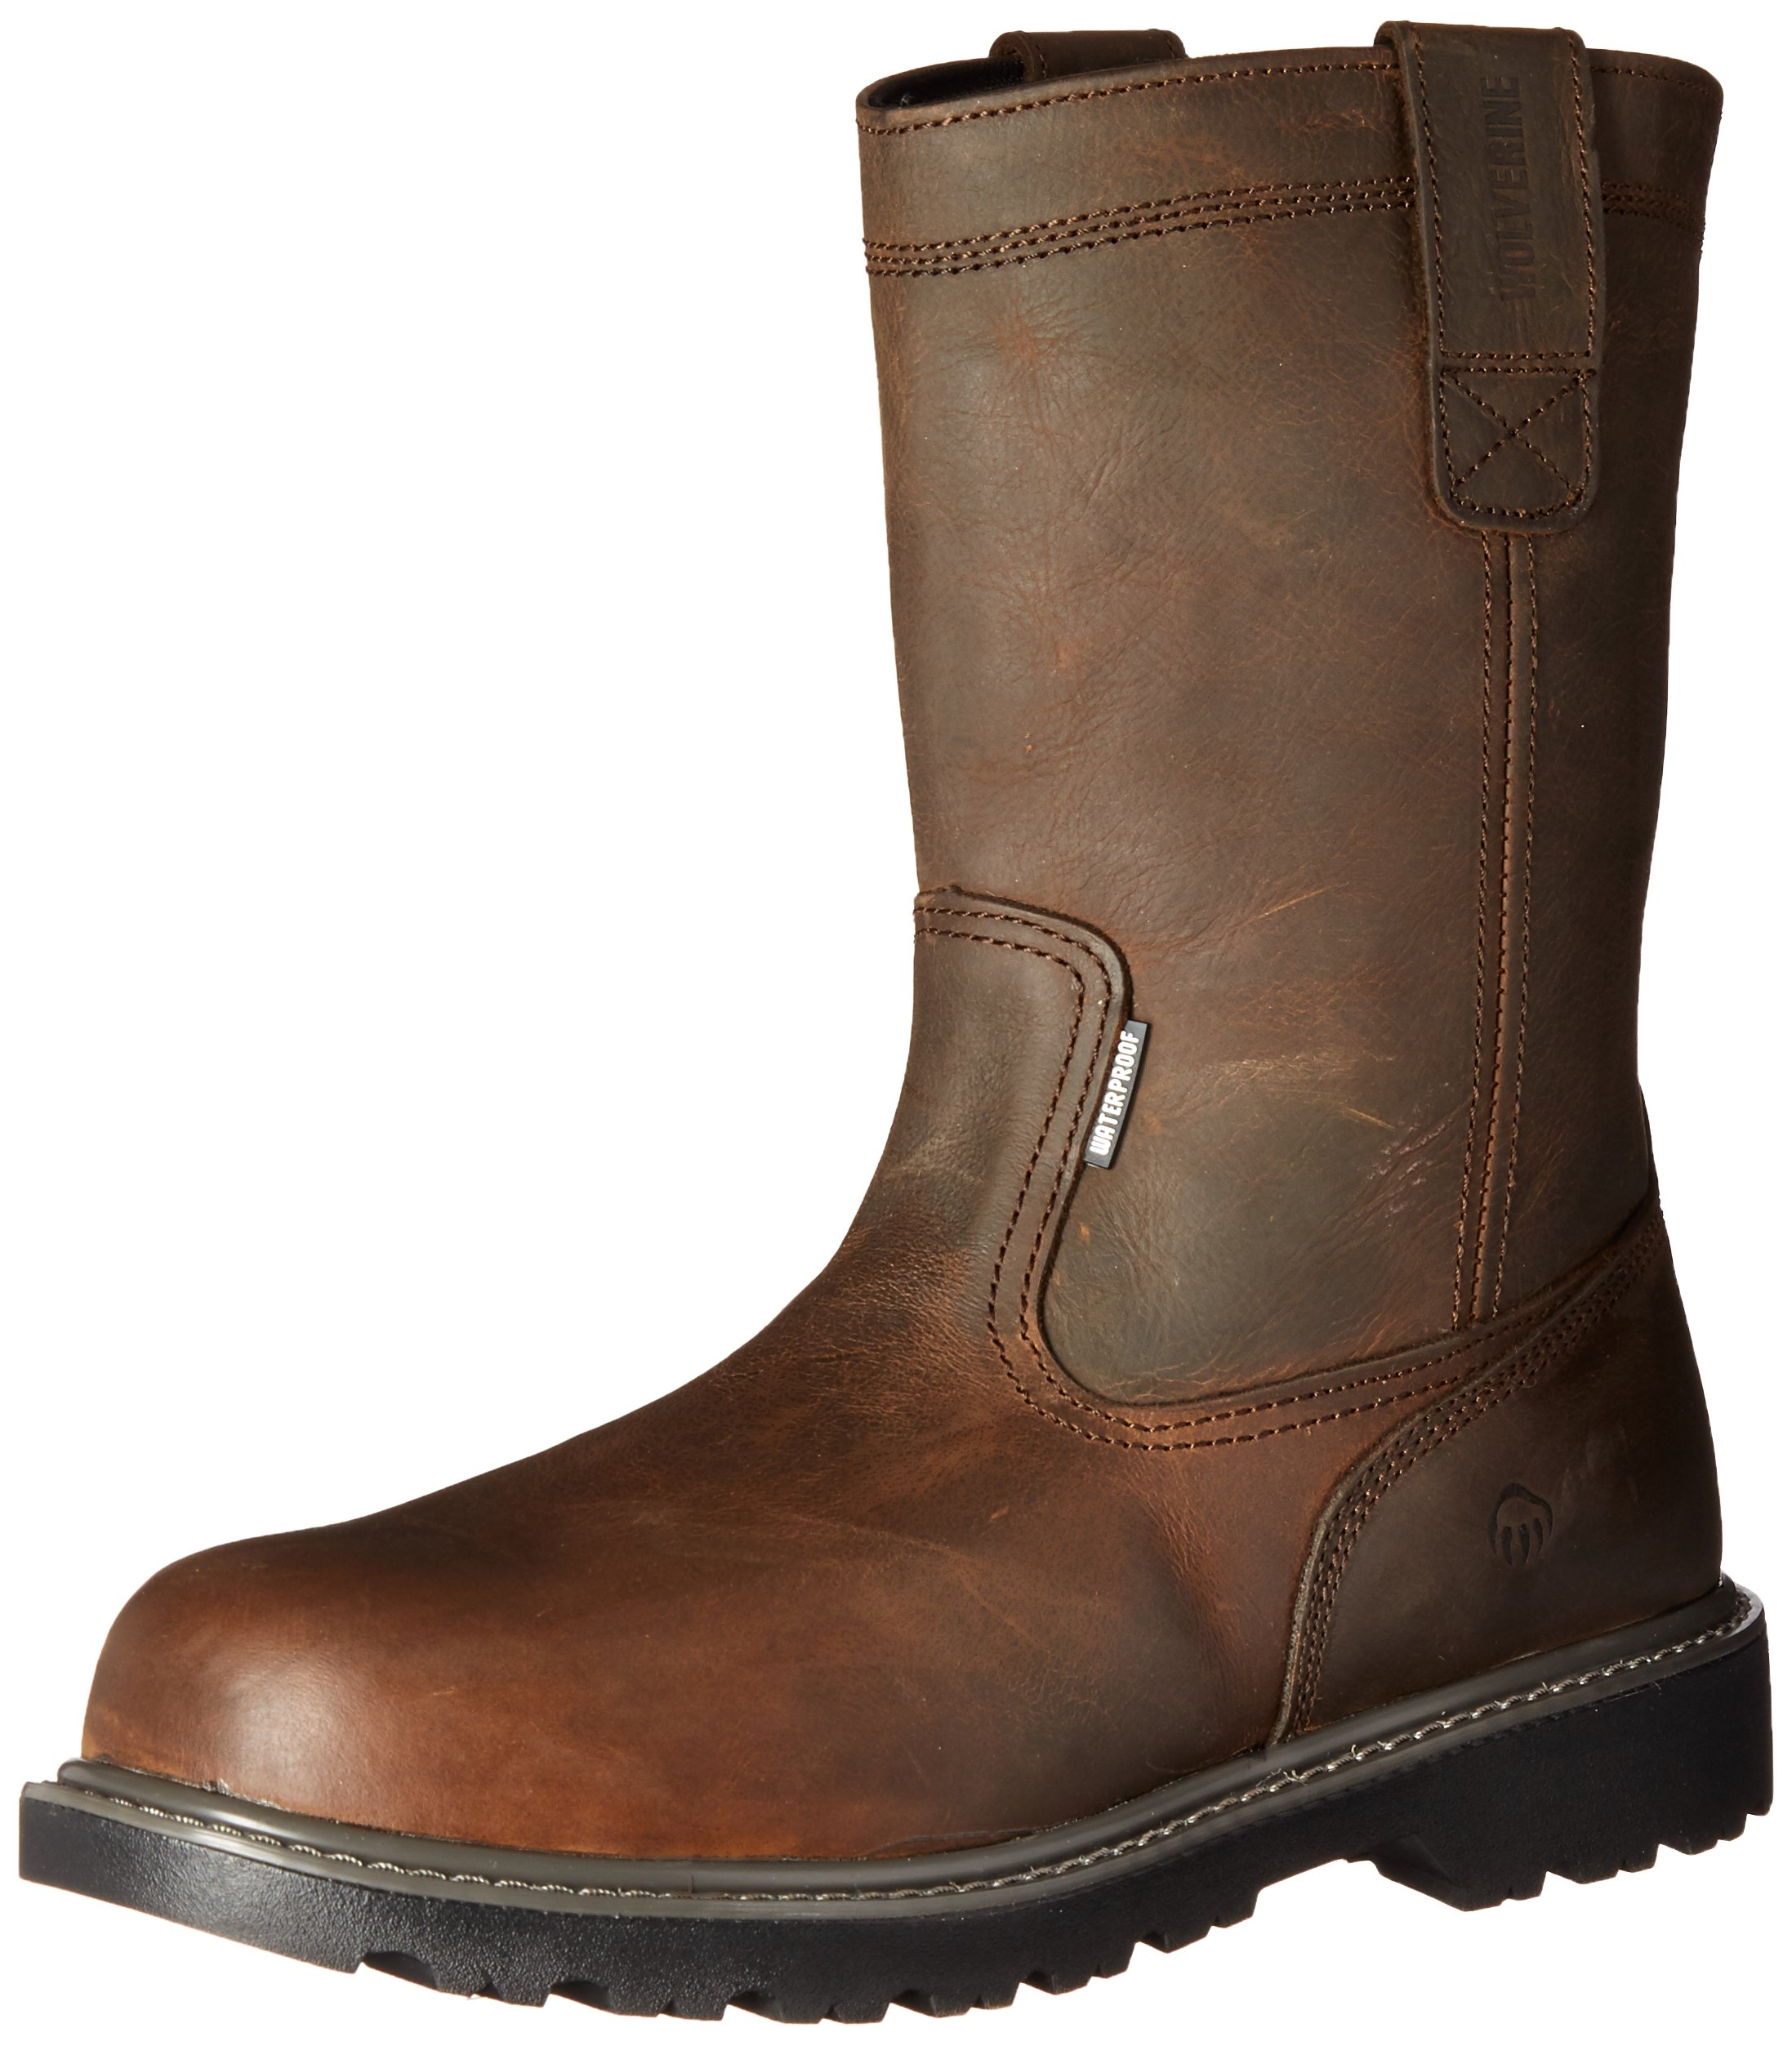 Wolverine Men's Floorhand Waterproof 10'' Soft Toe Work Boot, Dark Brown, 9 W US